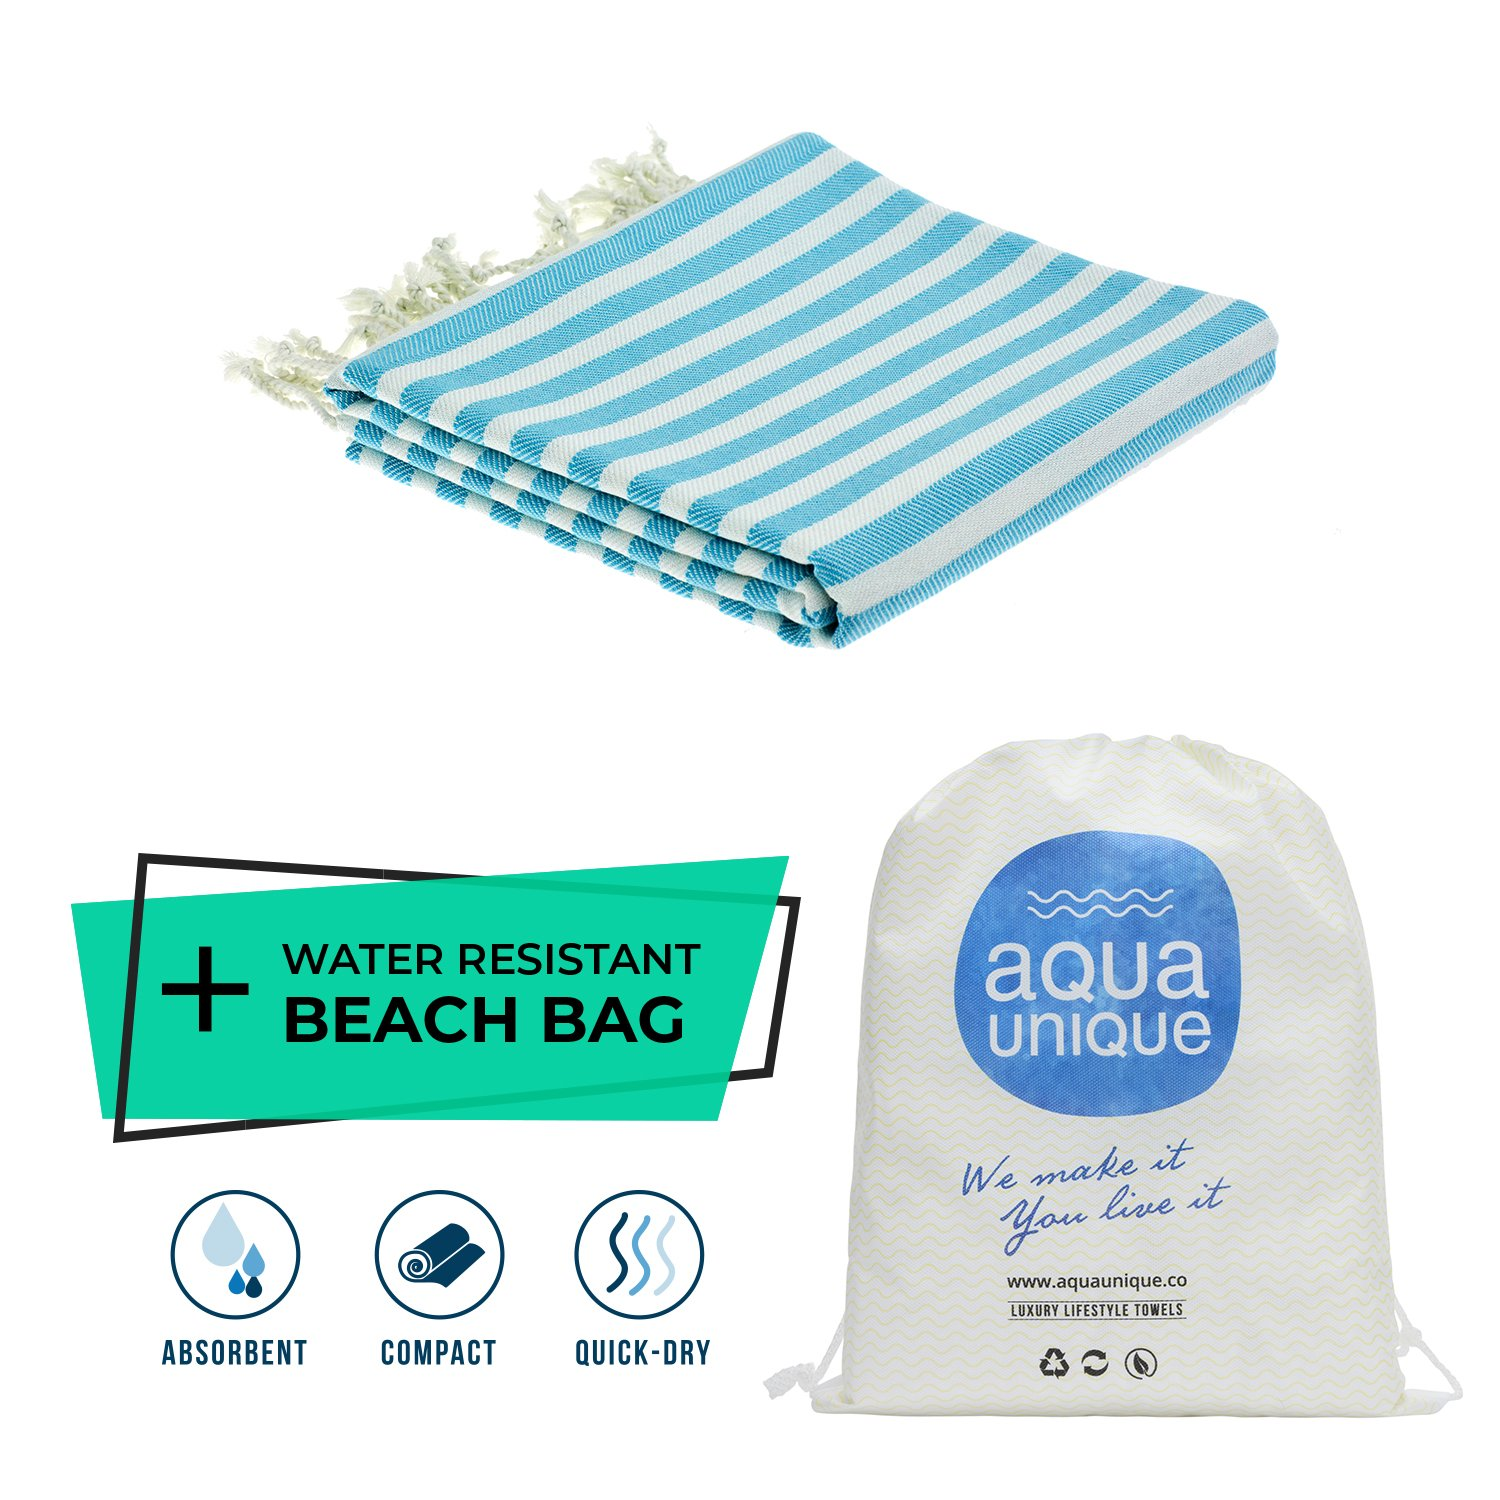 Turkish Handloomed Towel By Aqua Unique –Pre-Washed, Fashionable & Luxurious Towel For The Beach, Spa, Hotel, Festivals & Traveling   100% Pure Turkish Cotton & Oeko-Tex Certified (Striped Trq)